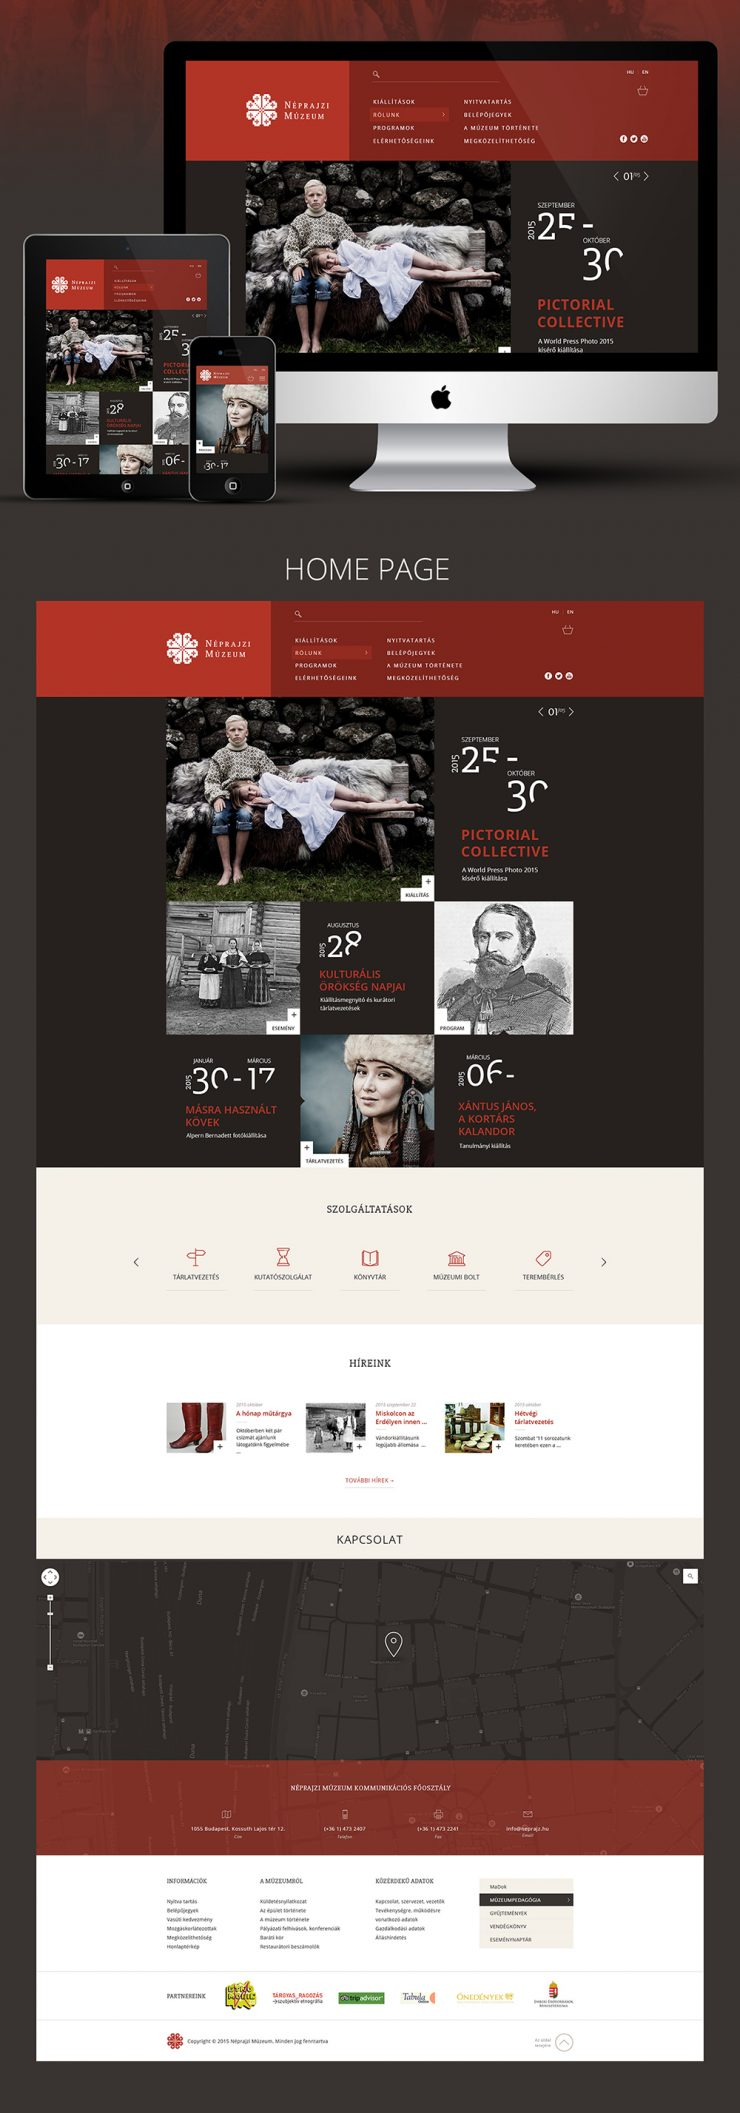 Photo Gallery Exhibition Website Free PSD Landing page www, Website Template, Website Layout, Website, webpage, Web Template, Web Resources, web page, Web Layout, Web Interface, Web Elements, Web Design, Web, User Interface, unique, UI, Template, swiss style, Stylish, Single Page, responsive design, Resources, Red, Quality, Psd Templates, PSD Sources, psd resources, PSD images, psd free download, psd free, PSD file, psd download, PSD, Portfolio, Photoshop, Photography, photographer, photo gallery, Photo, Painting, pack, original, one page, new, museum, Modern, Minimal, Layered PSDs, Layered PSD, Landing Page, Homepage, home page, history, Graphics, Gallery, Fresh, Freebies, Freebie, Free Resources, Free PSD, free download, Free, flat style, Flat, exhibition, Events, Event, Elements, download psd, download free psd, Download, detailed, Design, Dark, Creative, Clean, brown, Artist, art gallery, Art, Adobe Photoshop,